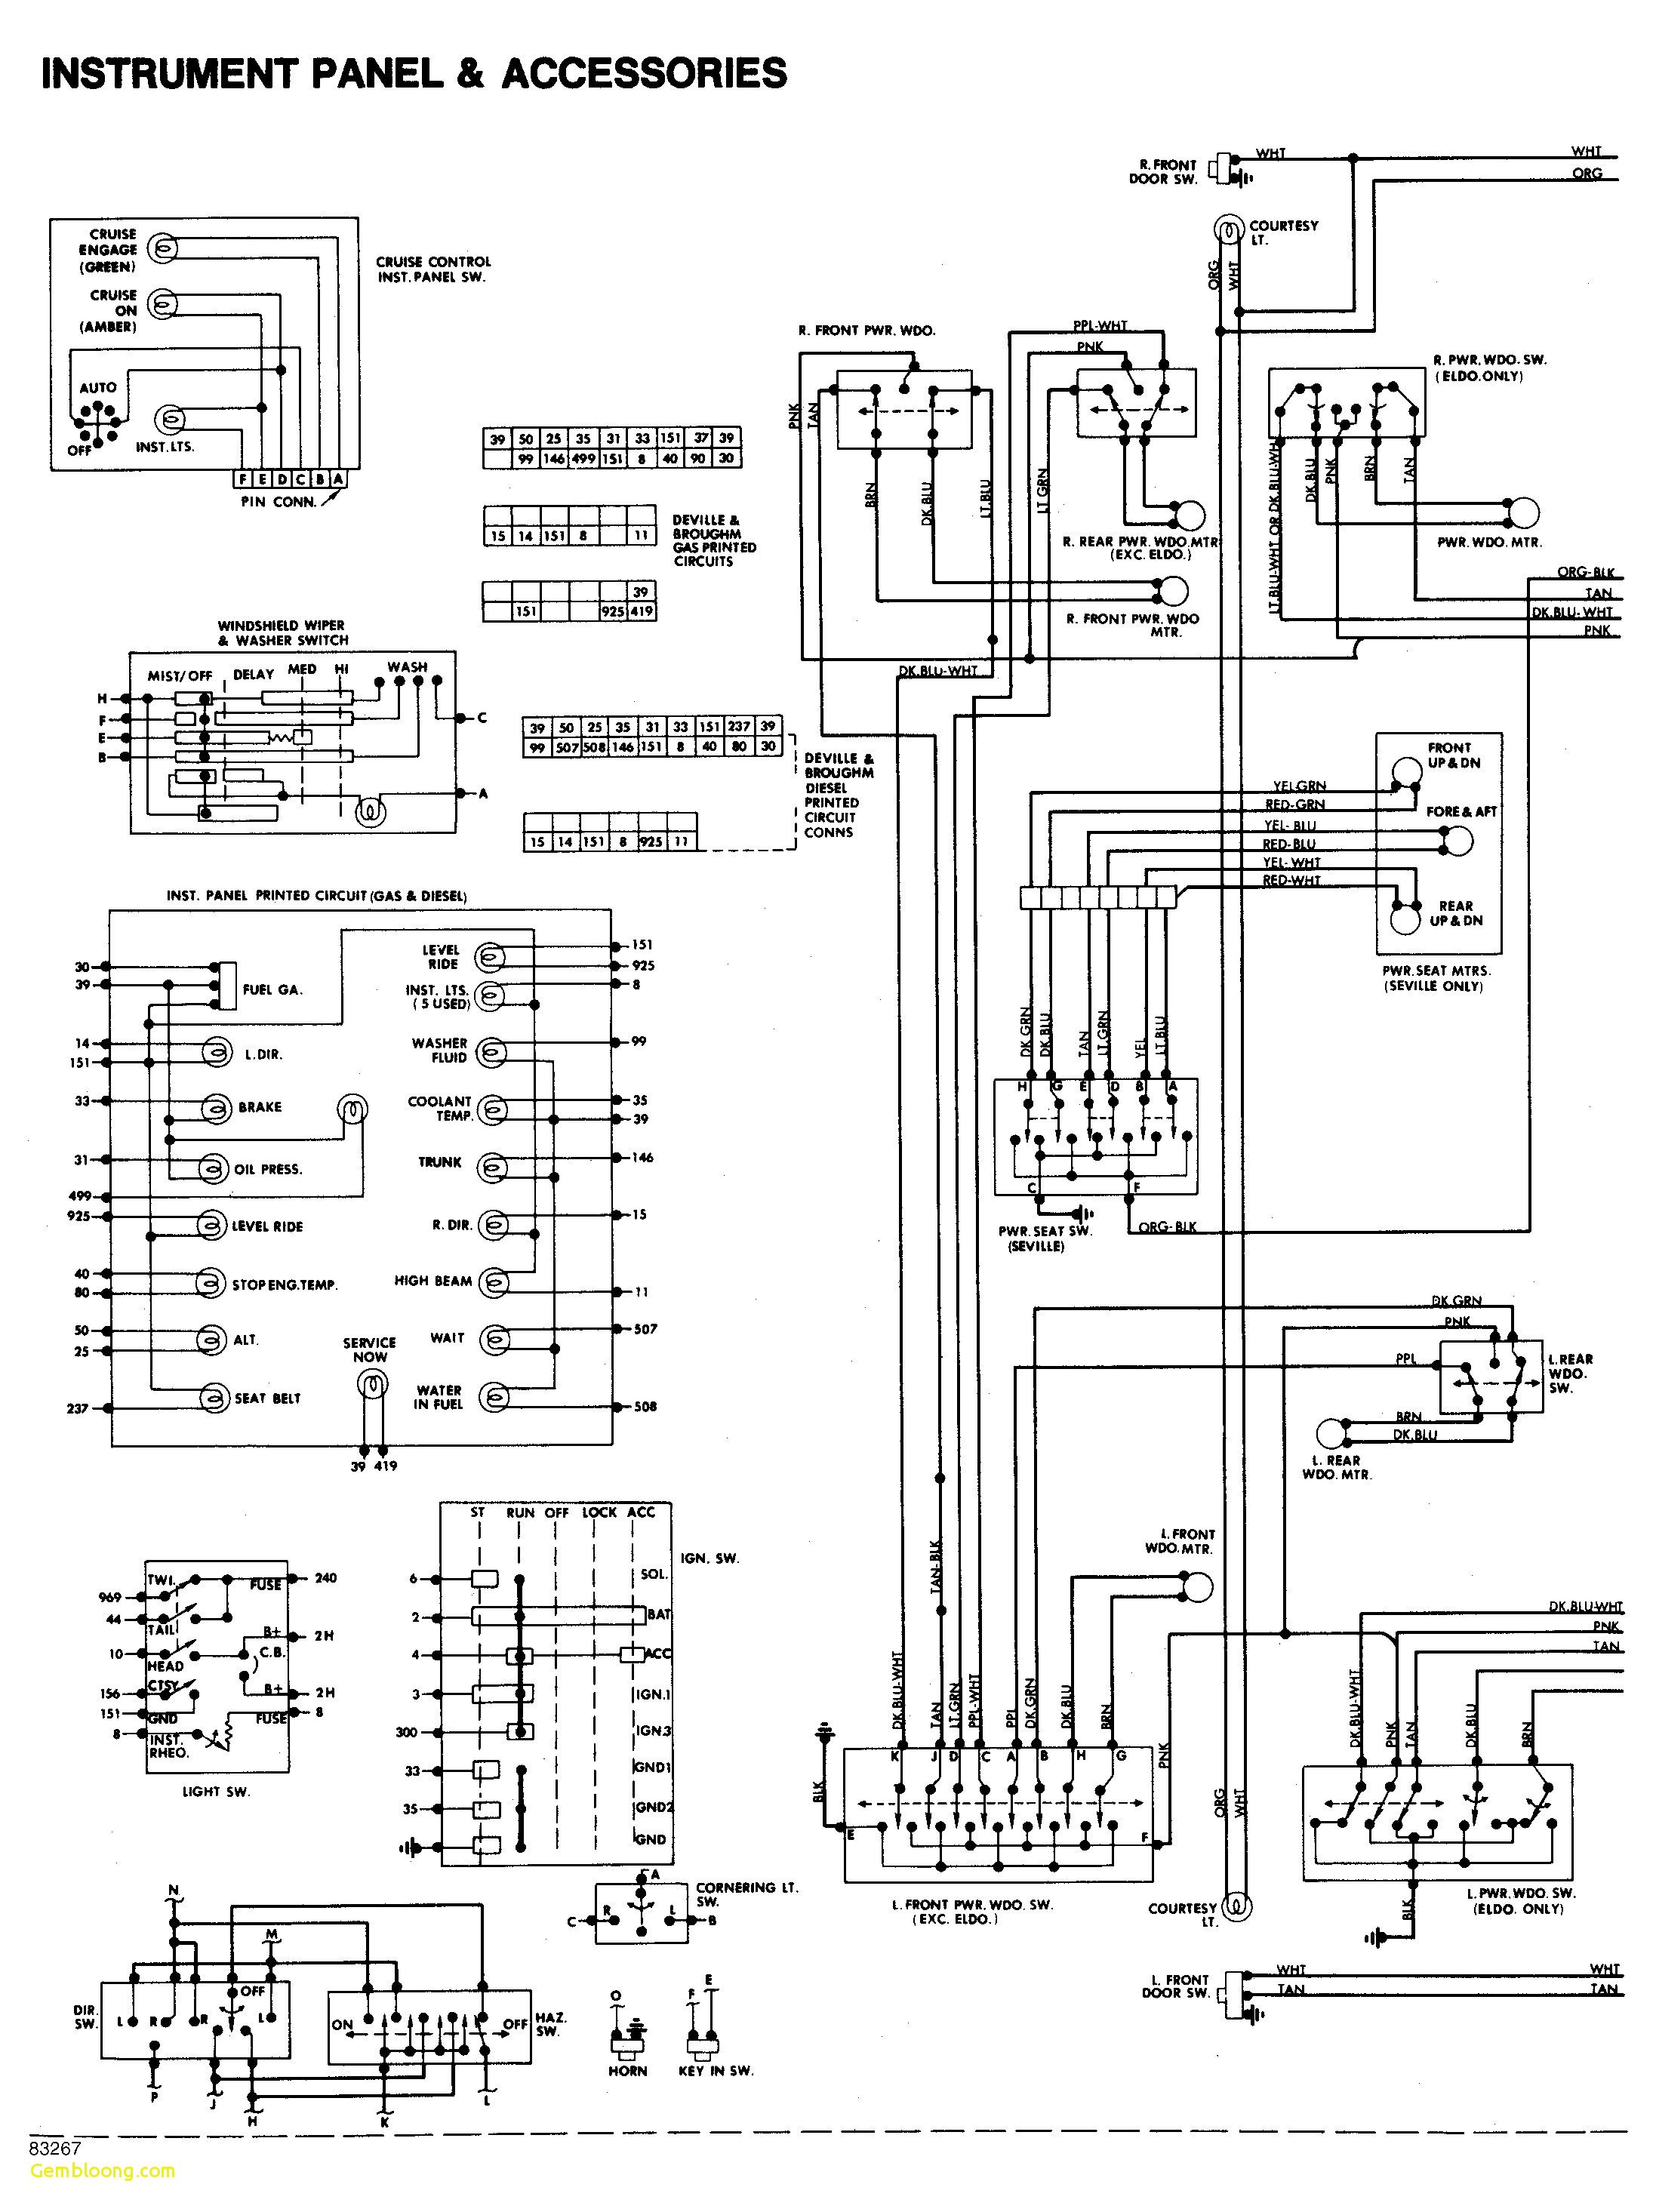 [SCHEMATICS_4PO]  22 Stunning Free Vehicle Wiring Diagrams ,  https://bacamajalah.com/22-stunning-free-vehicle-wiring-… | Electrical wiring  diagram, Diagram design, Electrical diagram | Cadillac Cts Radio Wiring Diagram Free Download |  | Pinterest